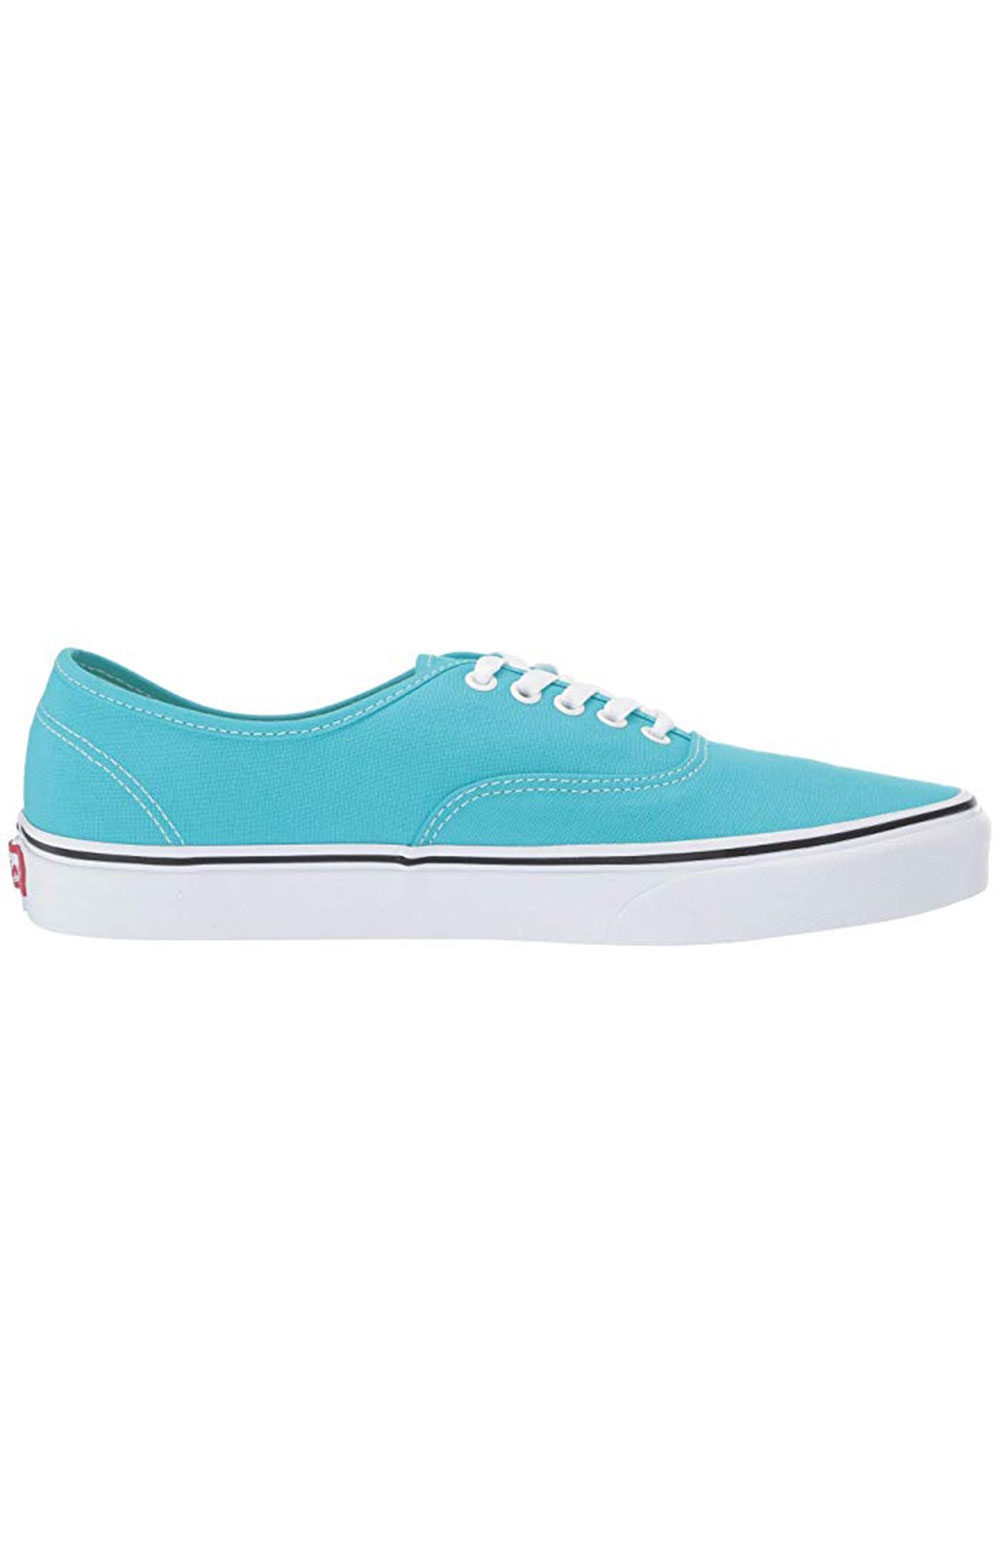 (8EM0P5) Authentic Shoe - Scuba Blue